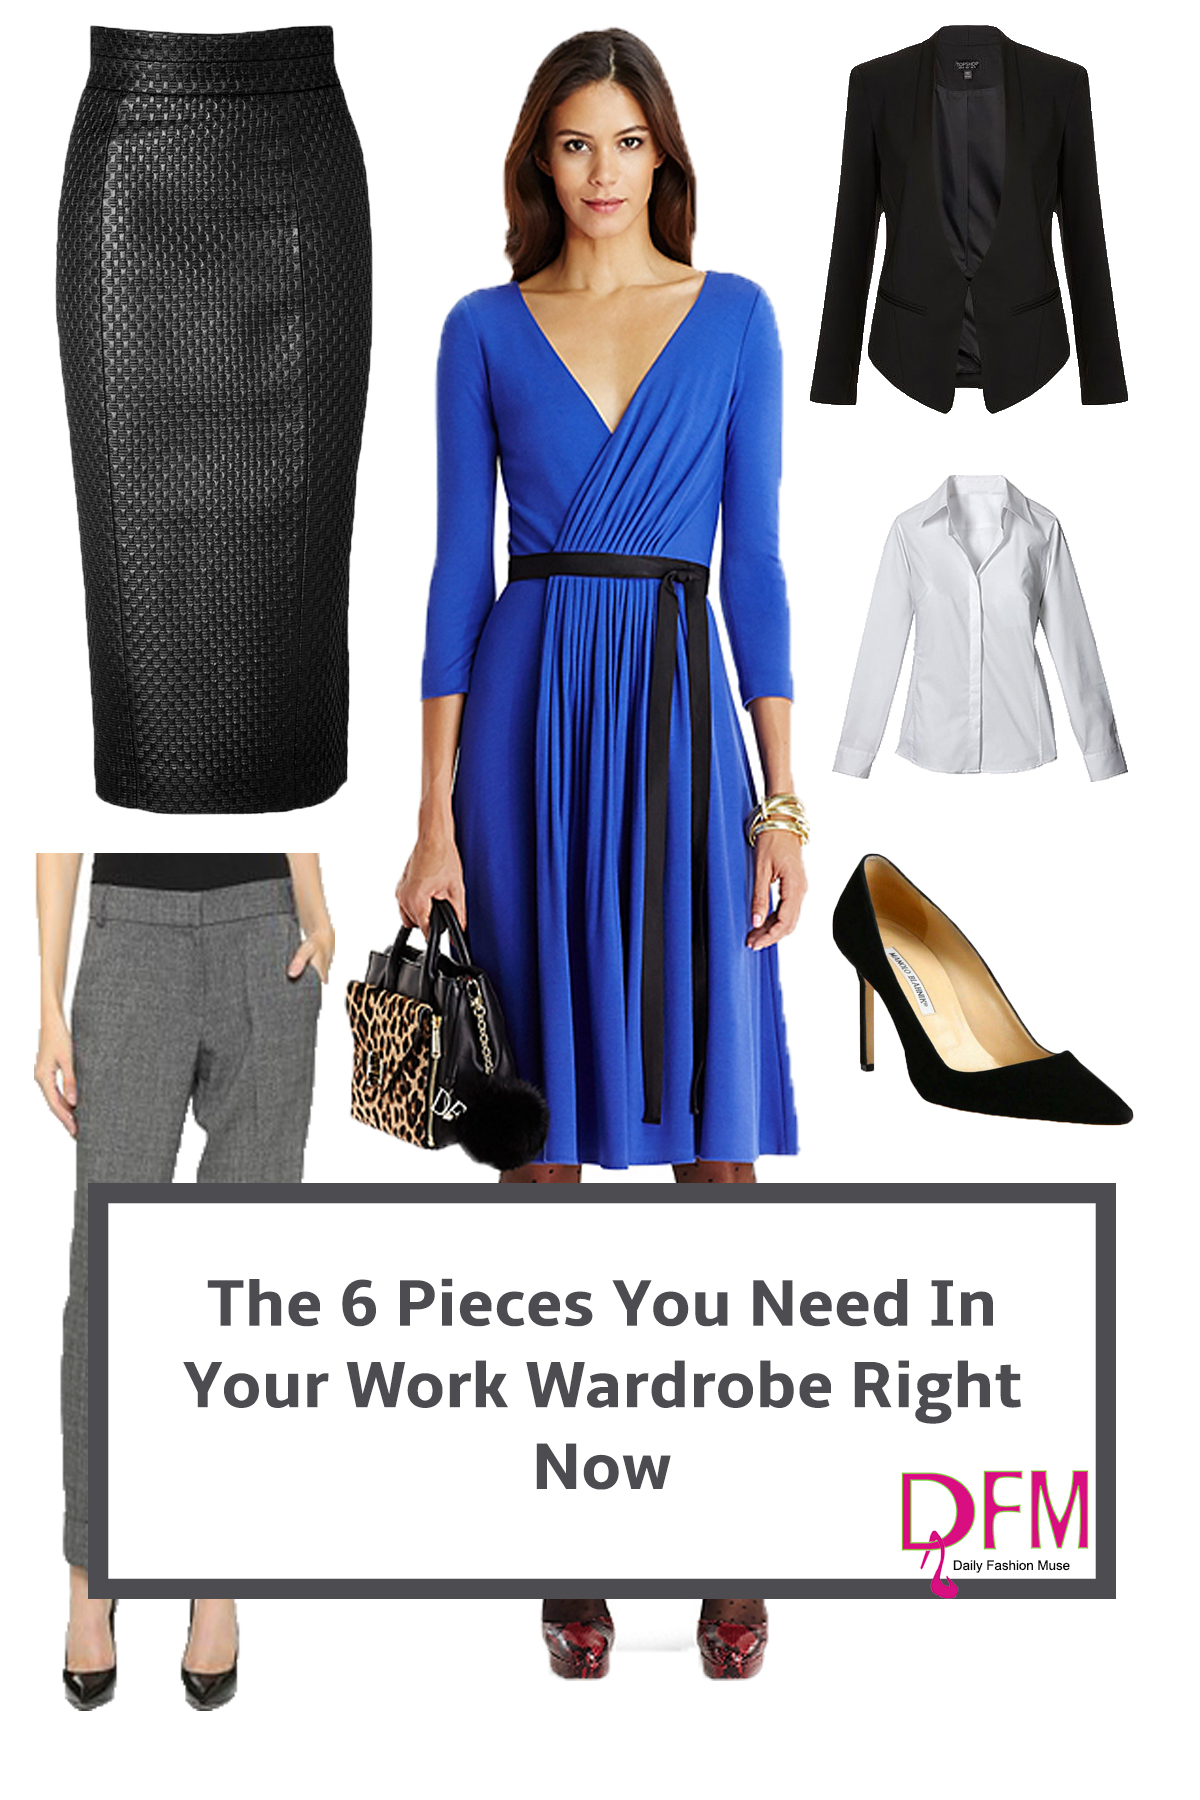 Build your work wardrobe with these 6 pieces. They work just as well for weekend wear. Click through to find out how.